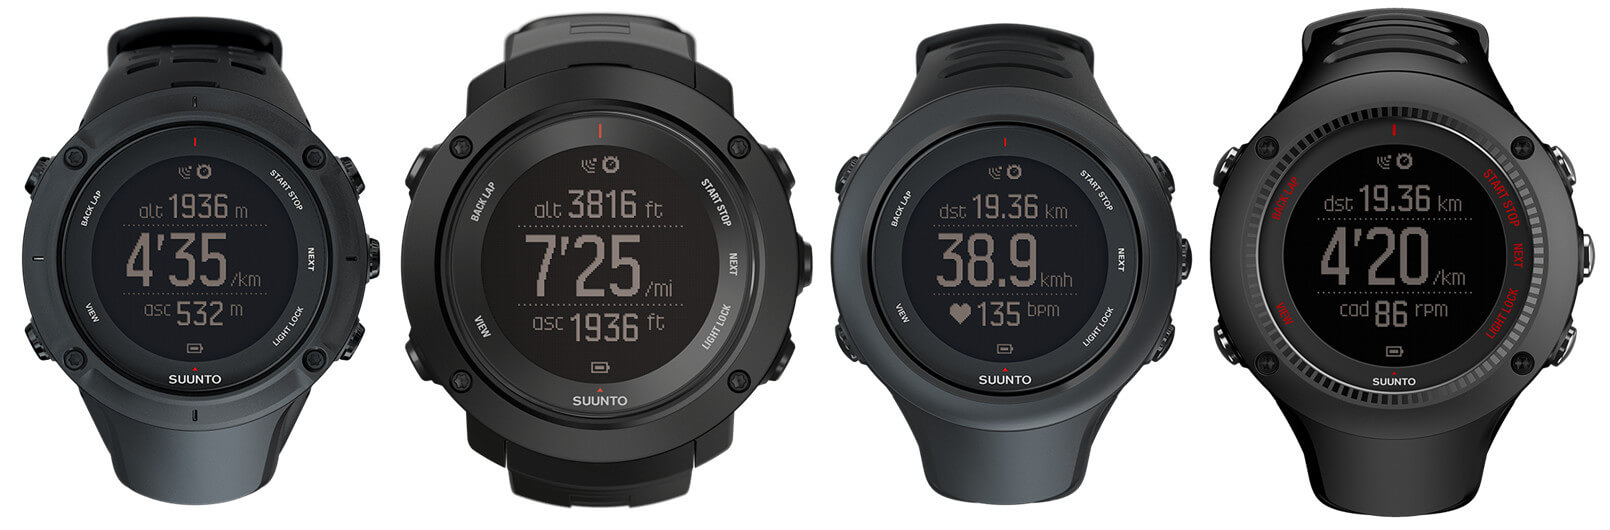 Suunto Ambit3 Waterproof (50-meter and 100-meter WR) GPS Smartwatches - Peak, Vertical, Sport, Run